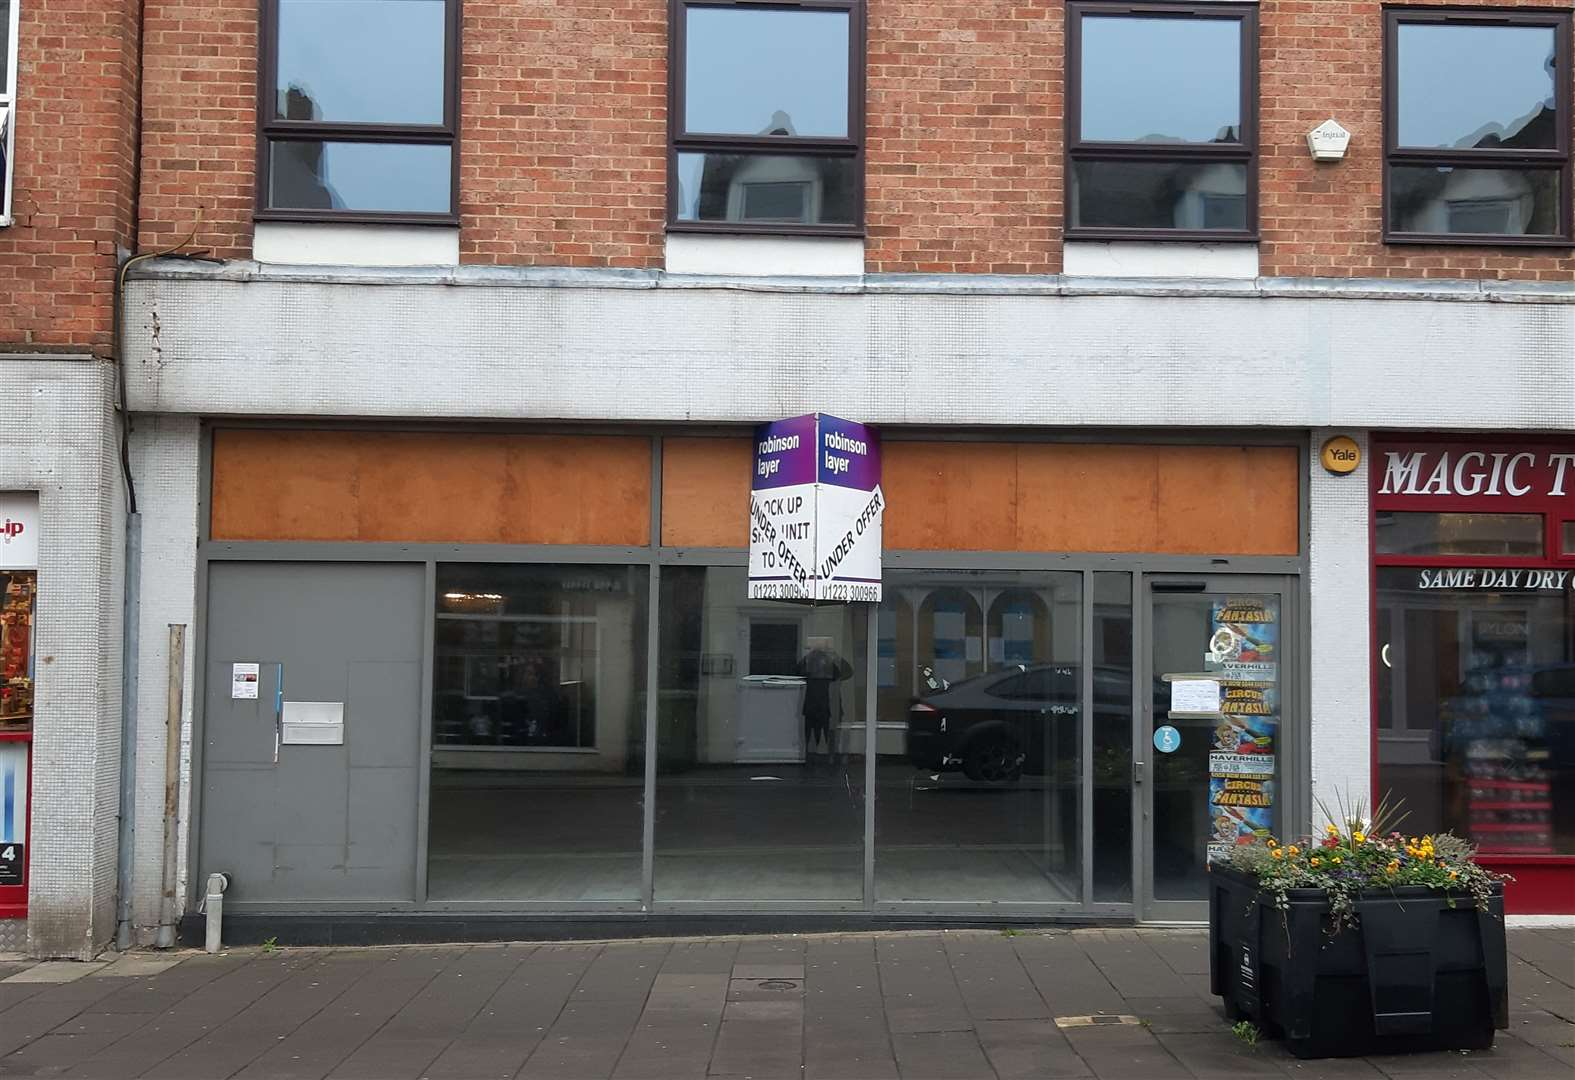 Plans submitted to open a new restaurant in Haverhill